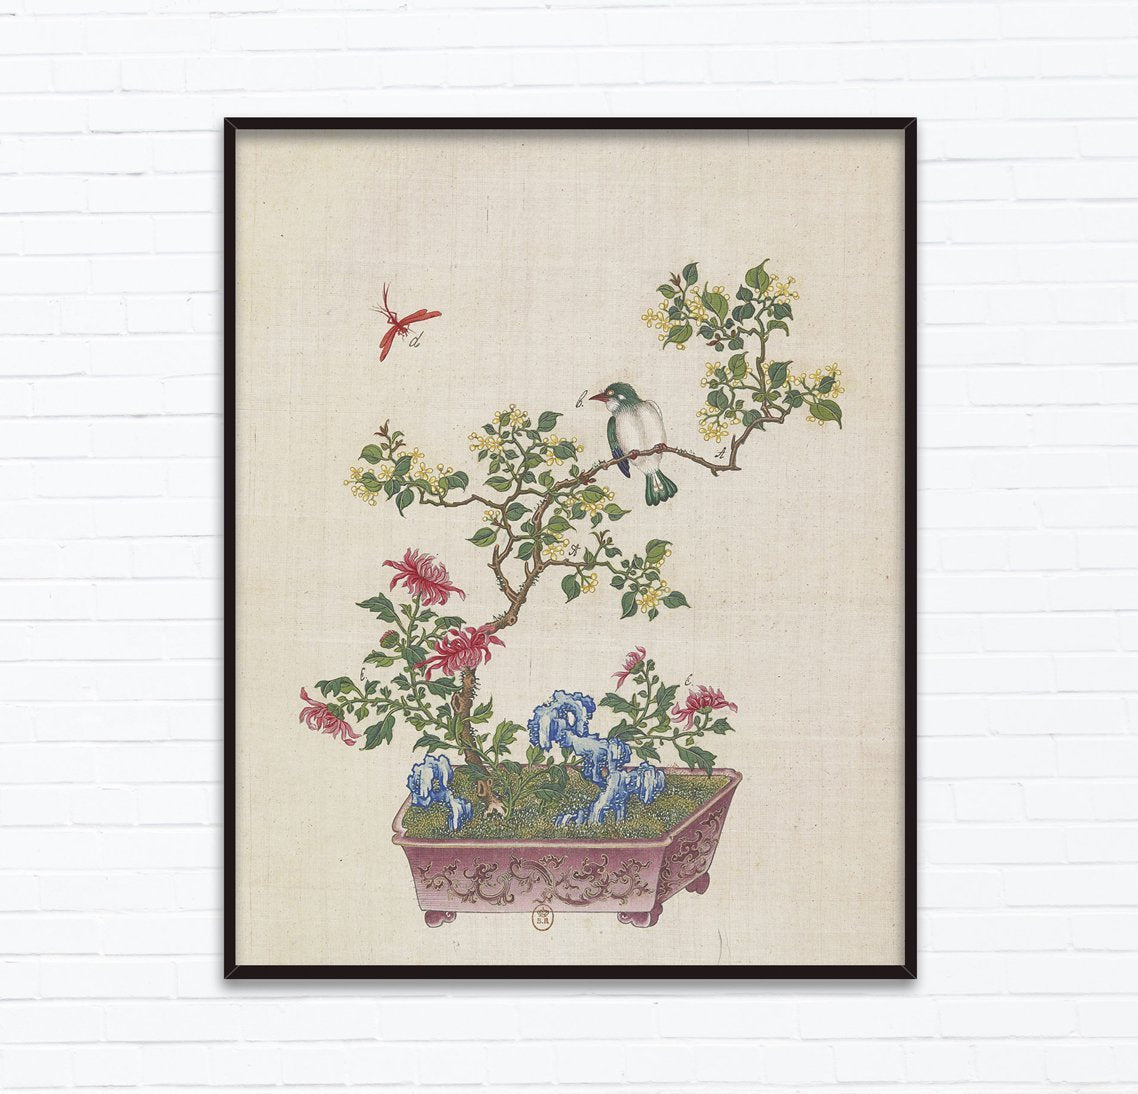 Buy 18th Century Chinese Bonsai Botanical Ink And Brush Painting Flowers And Birds Design Inspiration Wall Art Posters Instant Download At Lifeix